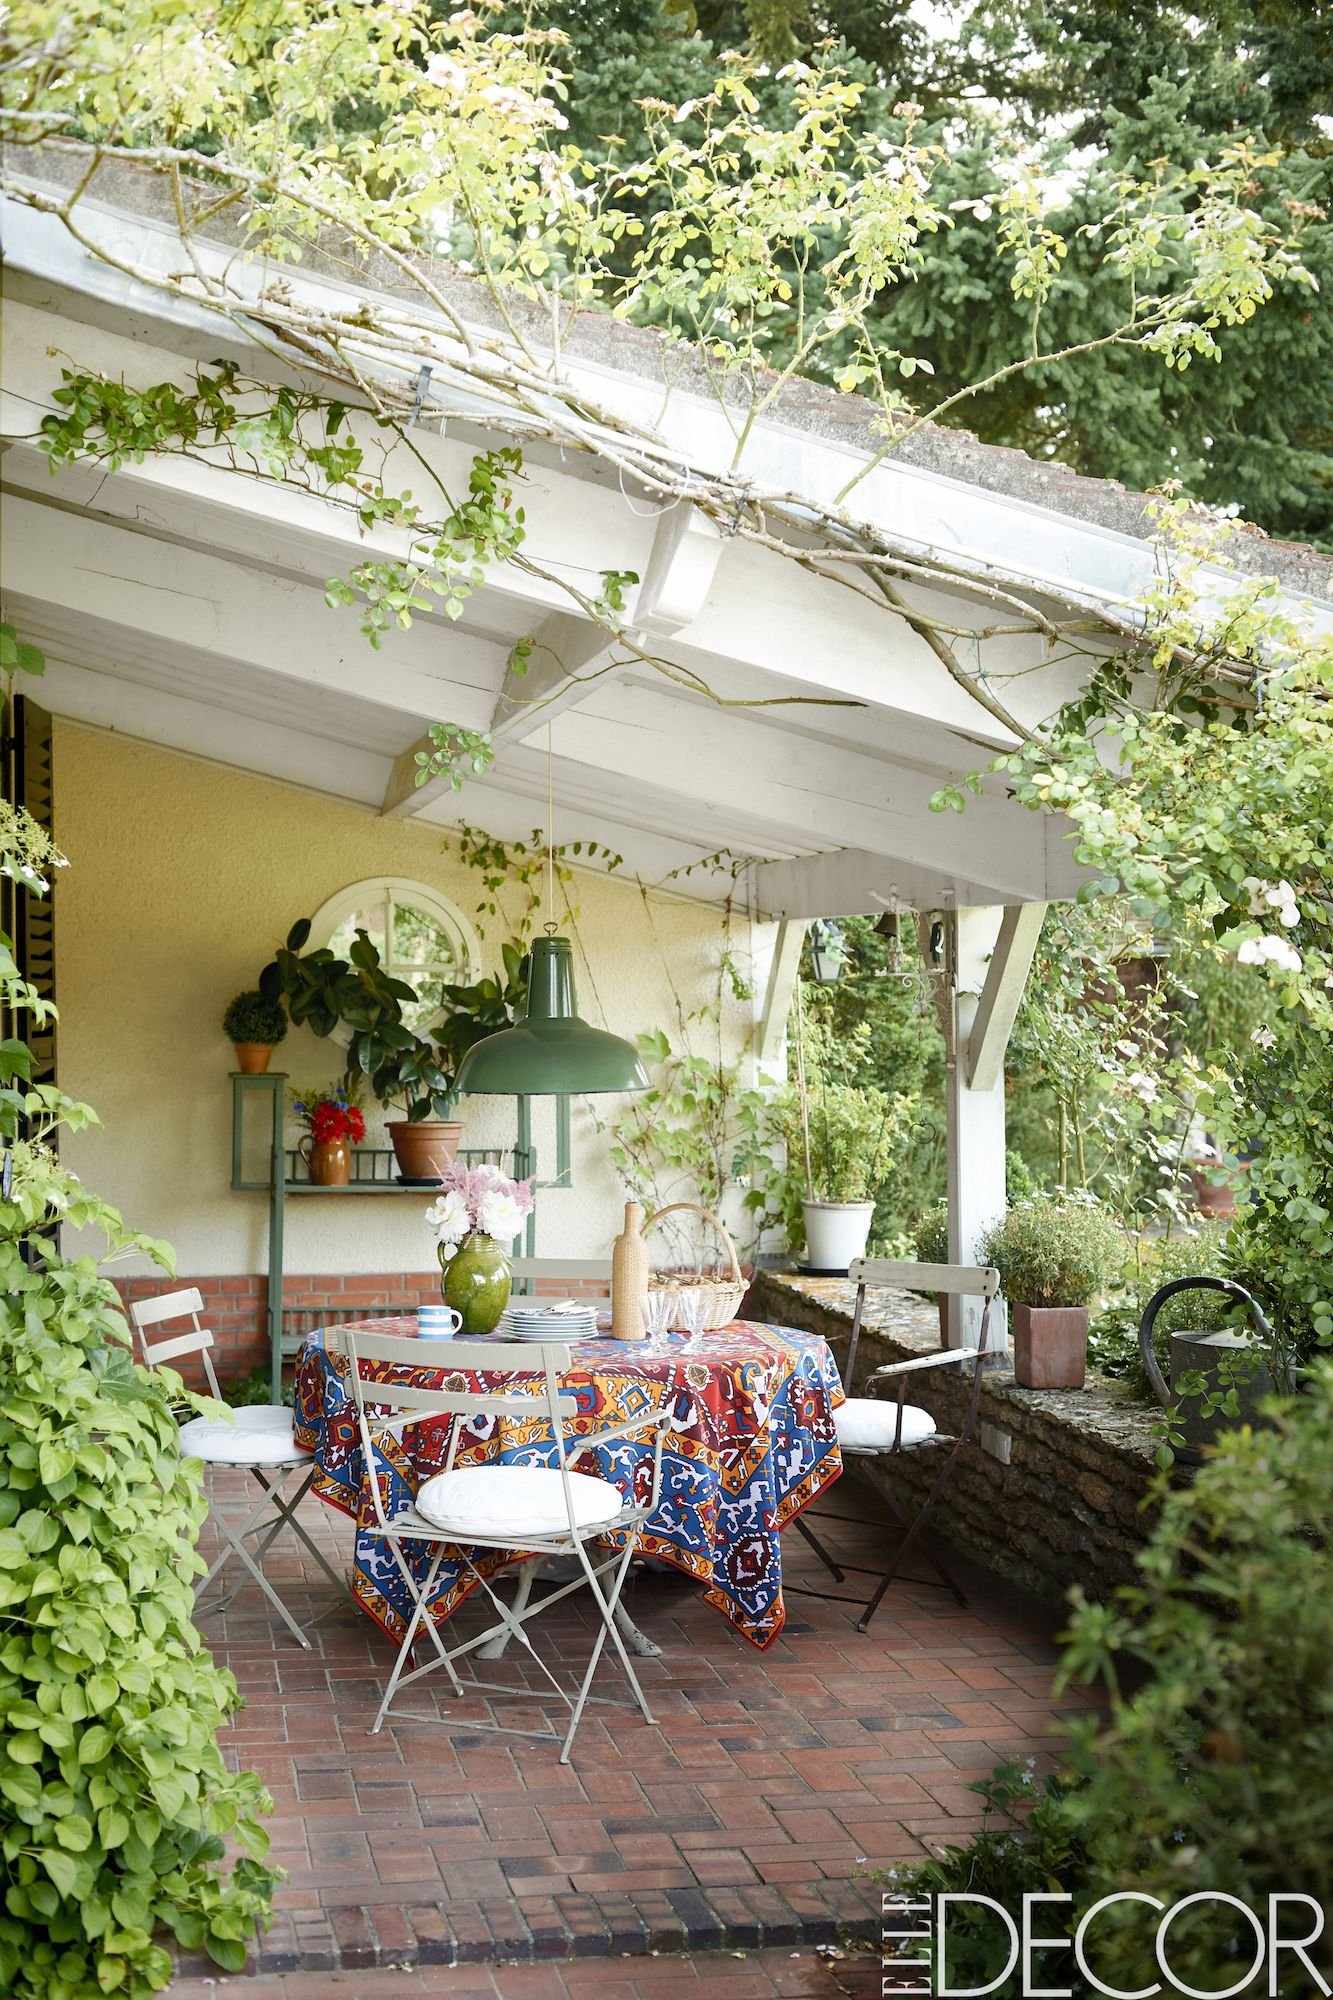 Inspiring Small Patio Decor Ideas 40 Gorgeous Small Patios in Courtyard Backyard Ideas